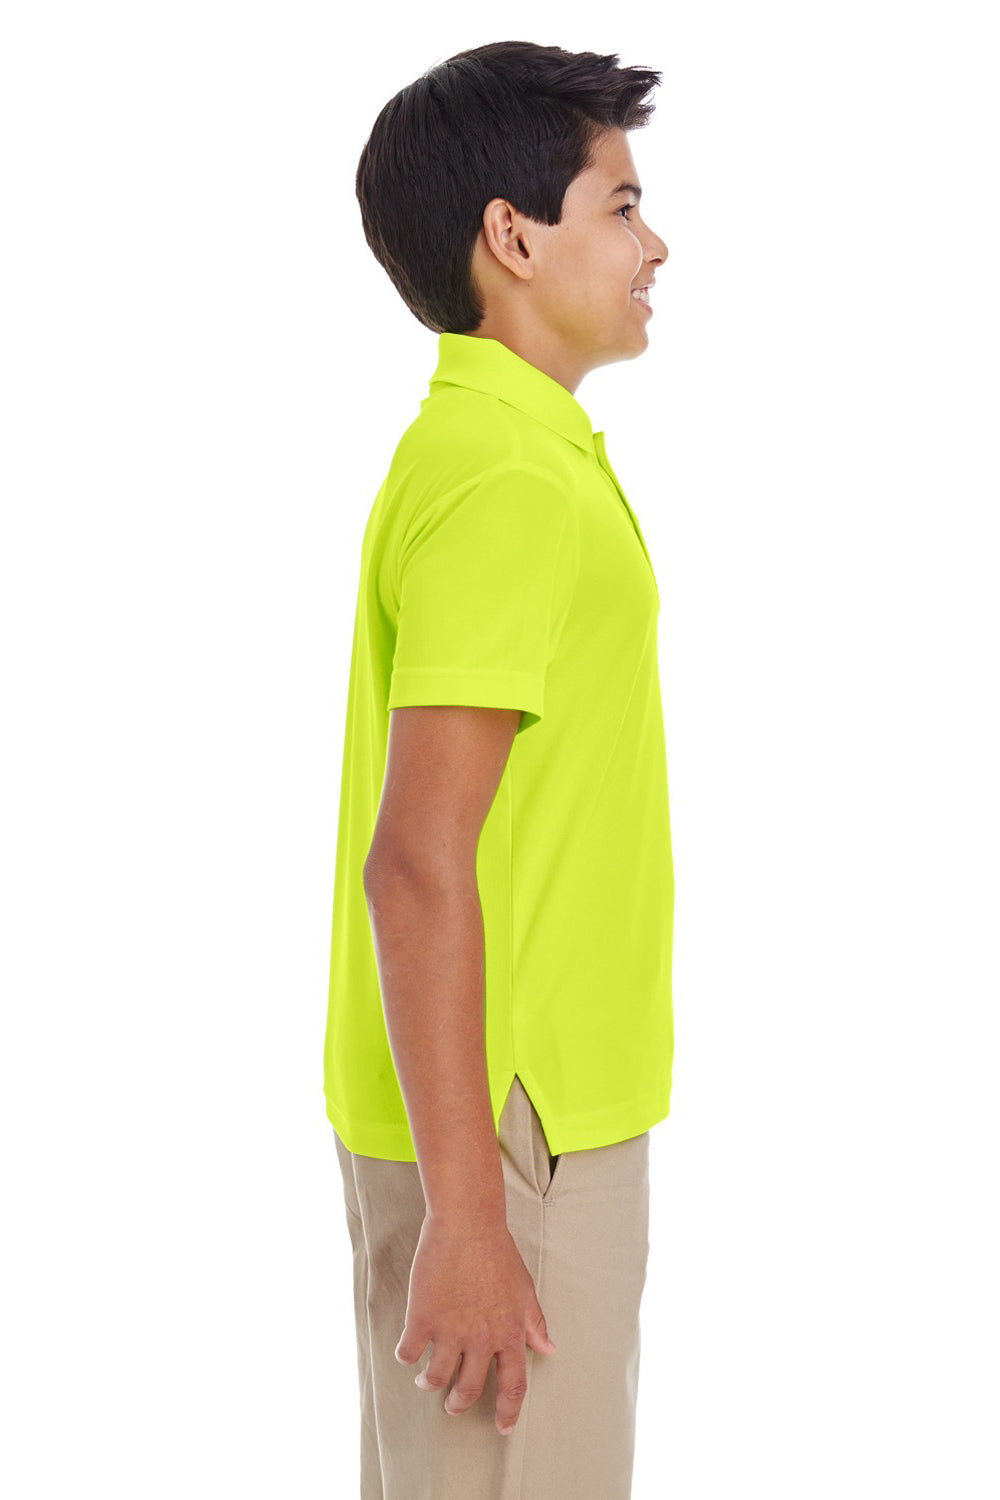 Core 365 88181Y Youth Origin Performance Moisture Wicking Short Sleeve Polo Shirt Safety Yellow Side